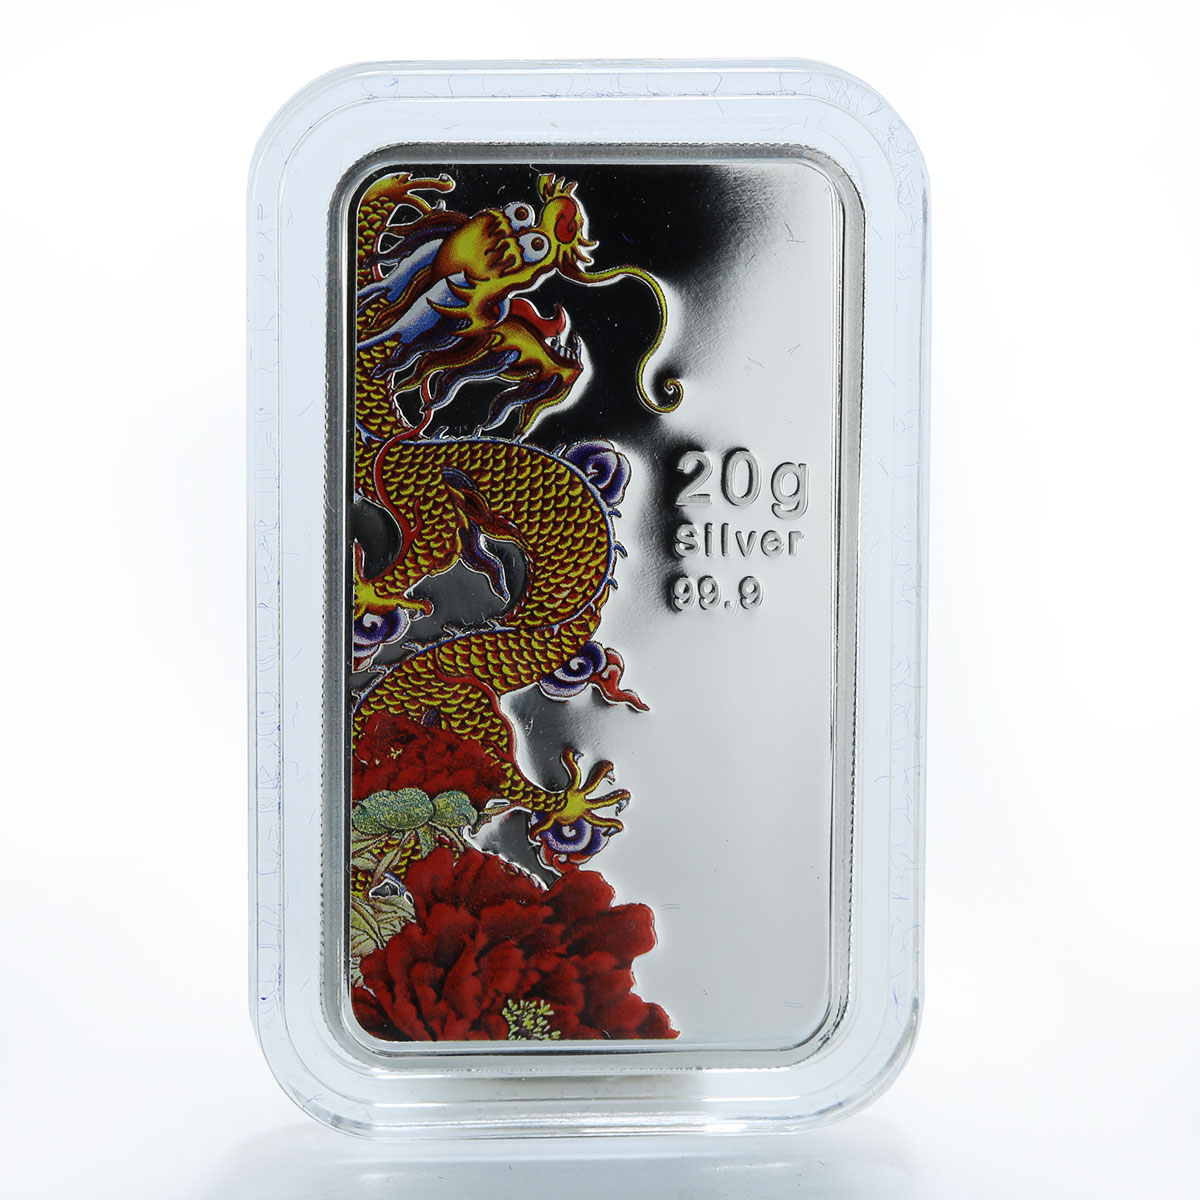 Cook Islands $1 Year of the Dragon 2012 Peony Dragon, 20 g Silver Coin Lunar